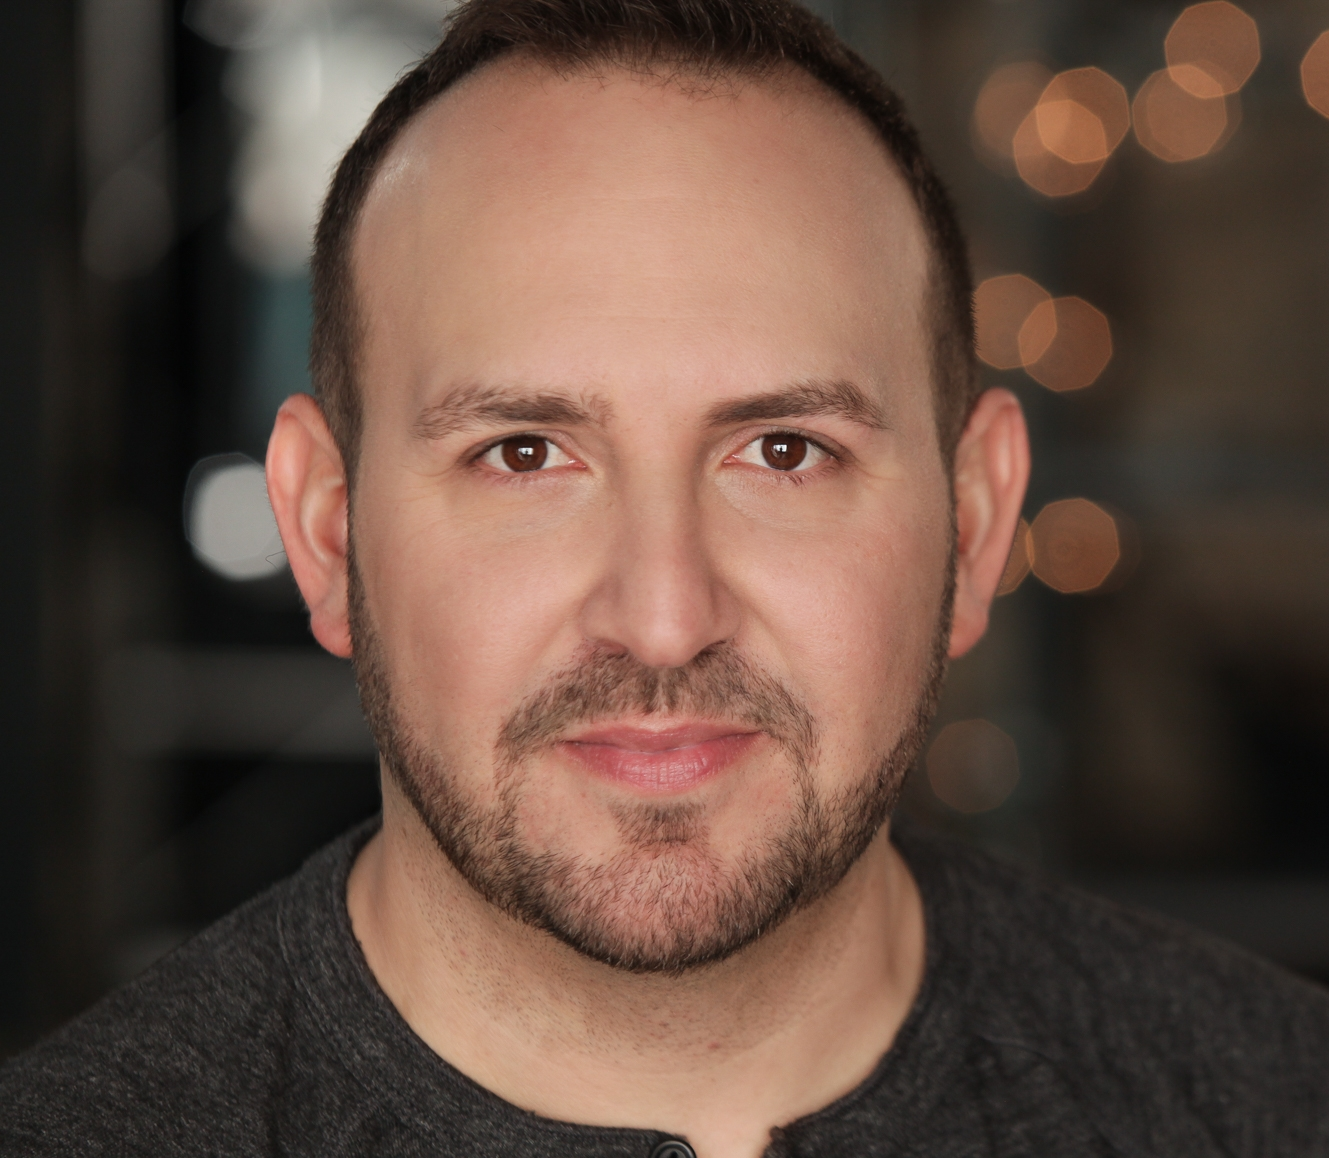 Shane Roberie (Reuben/Potiphar U/S)  is excited to be joining Citadel for this production of Joseph! Previous credits include: Nightmares & Nightcaps (Black Button Eyes), Disaster! (Chicago Theatre Workshop), Into the Woods (Metropolis PAC), 25th Annual Putnam County Spelling Bee (Madkap), The Liar (Promethean Theatre Ensemble), & As You Like It (Midsommer Flight). He would like to thank his Louisiana/Chicago families and his partner Jason for their continuous support.